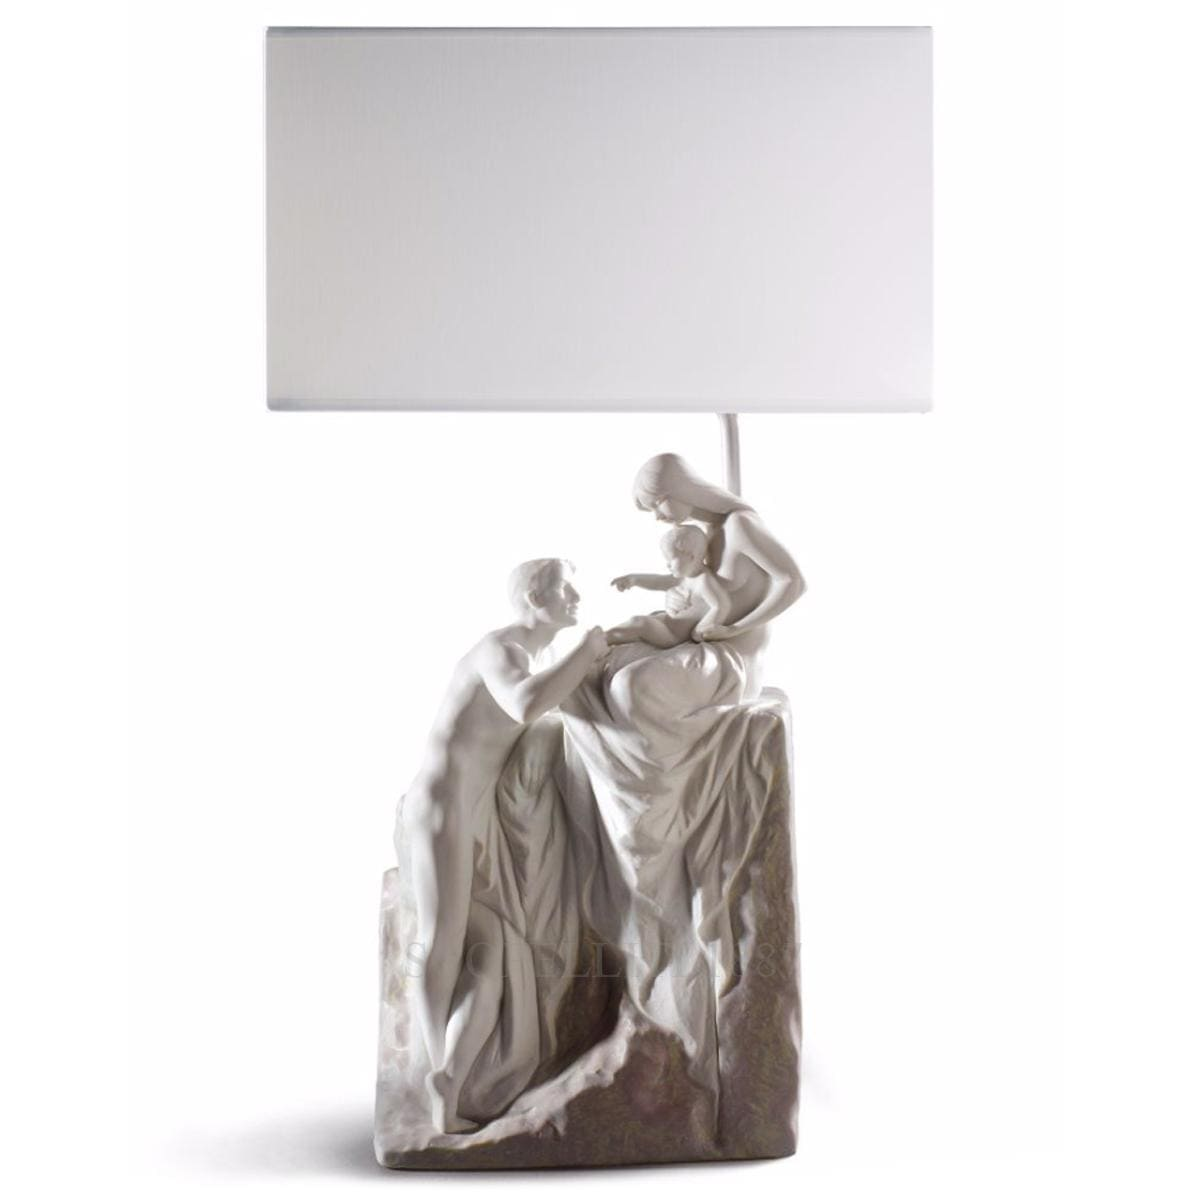 lladro family table lamp sculpture design